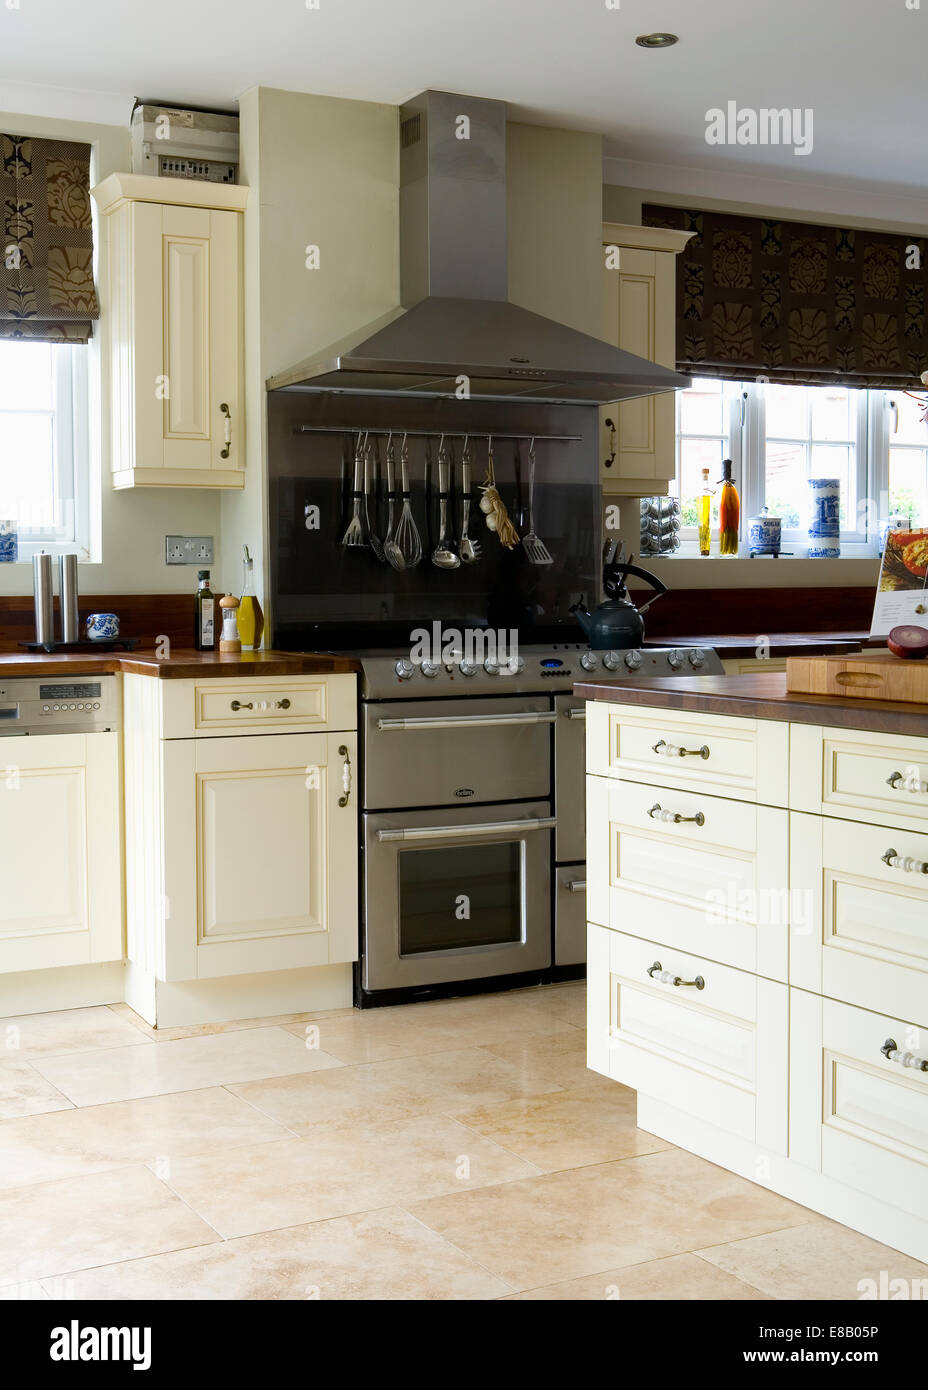 Cream travertine floor tiles in modern kitchen with large cream travertine floor tiles in modern kitchen with large stainless steel range oven and cream fitted units dailygadgetfo Gallery